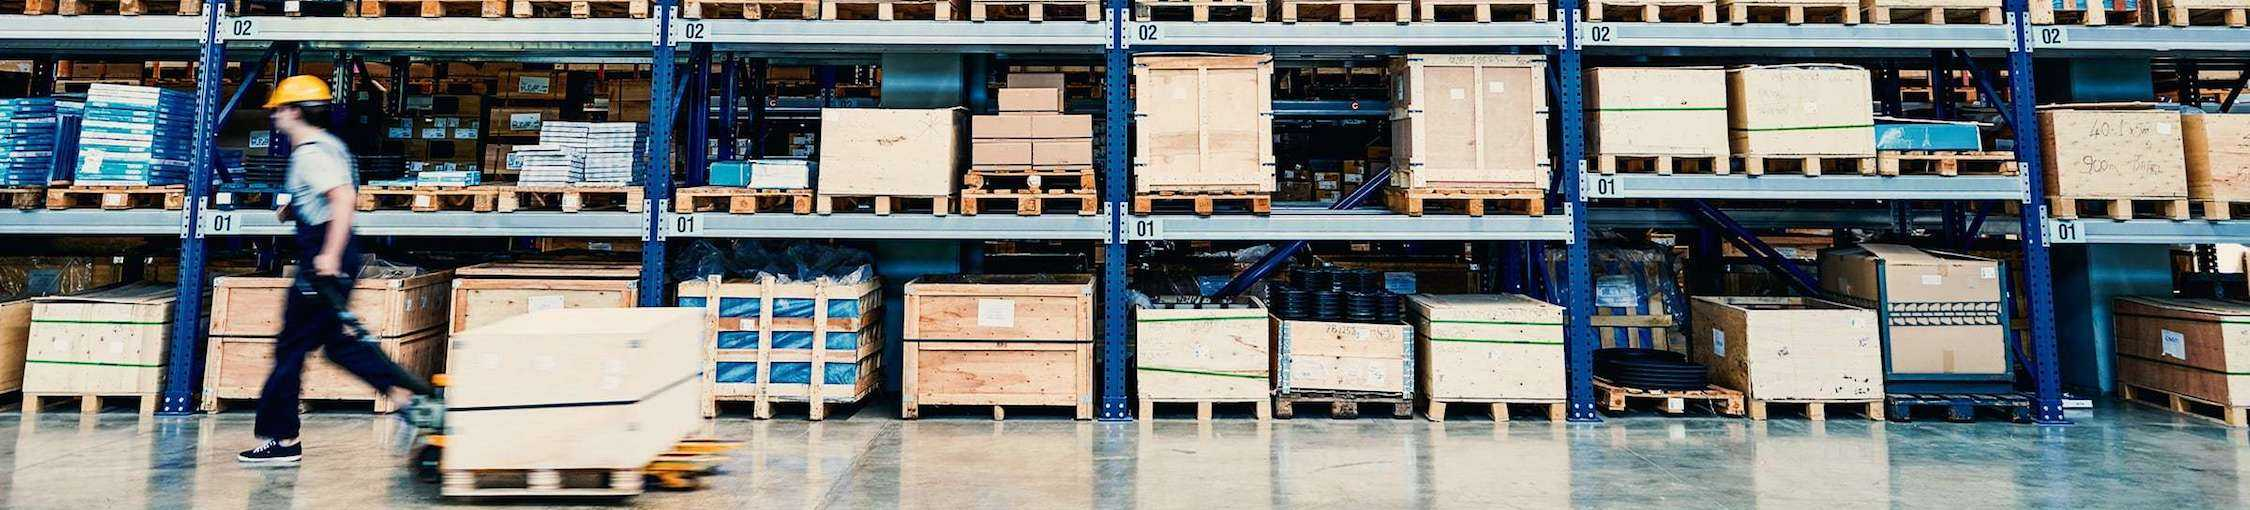 warehouse-and-support-activities